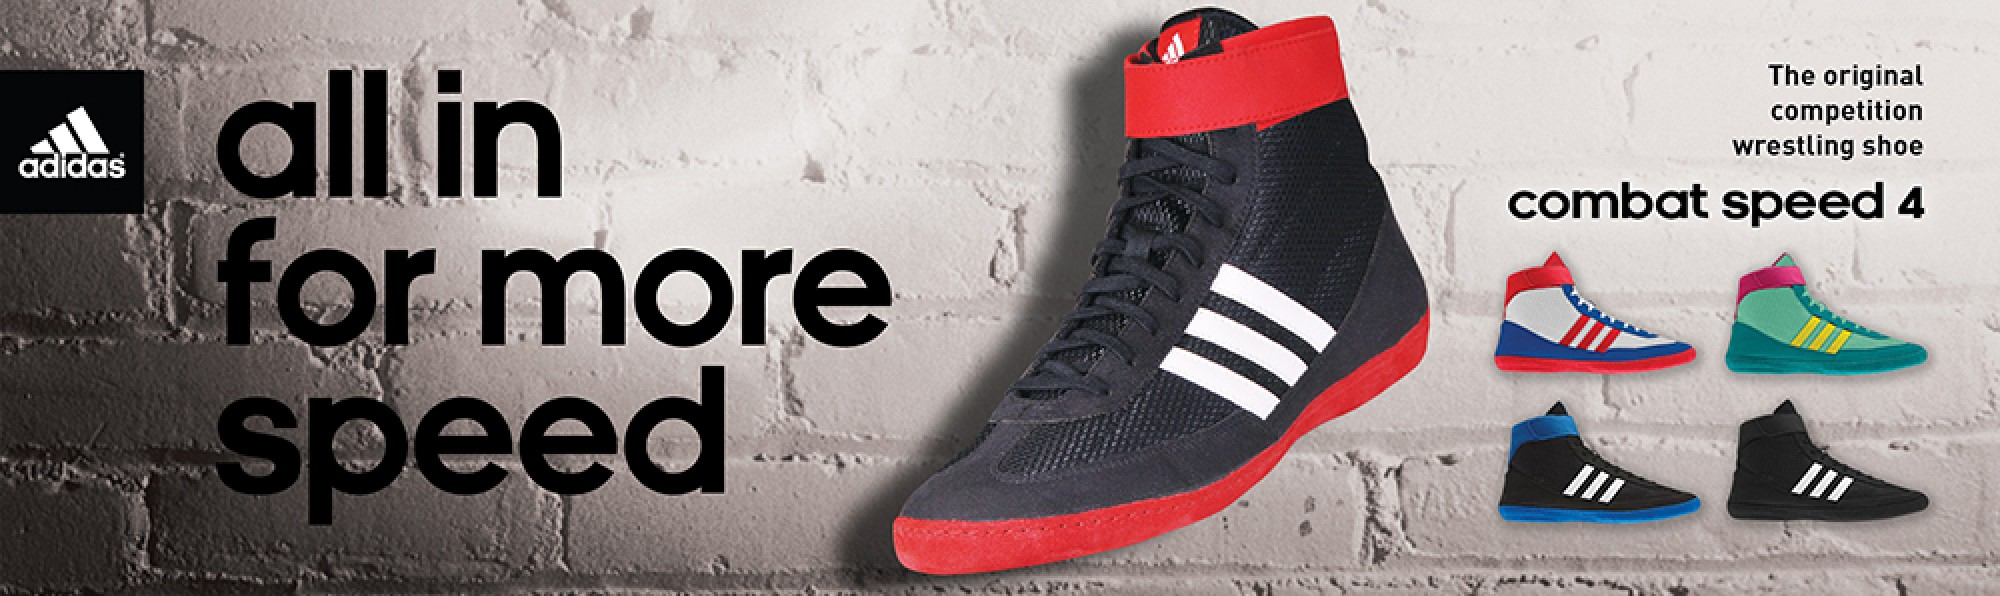 Adidas - All in for more speed